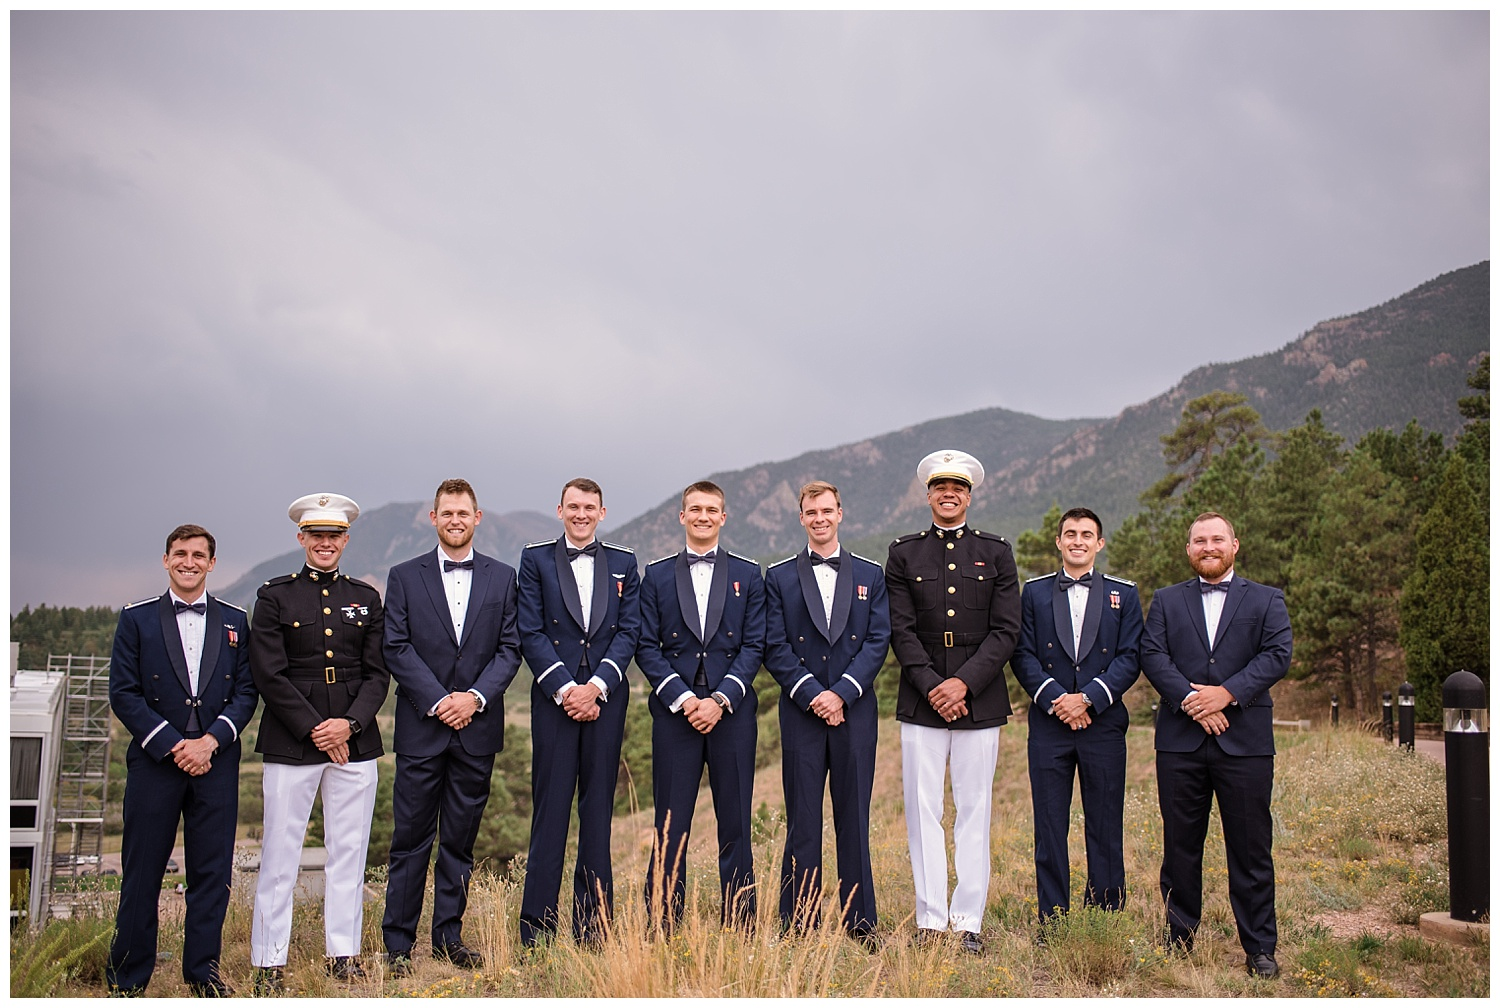 Military Wedding, Military Groomsmen, Navy, Army, Air force, Groomsmen in Dress blues, Dress blues, Colorado Wedding Photographer, Denver Wedding Photographer, Denver Elopement Photographer, Colorado Elopement Photographer, Rocky Mountain Wedding Photographer, Downtown Denver Photographer